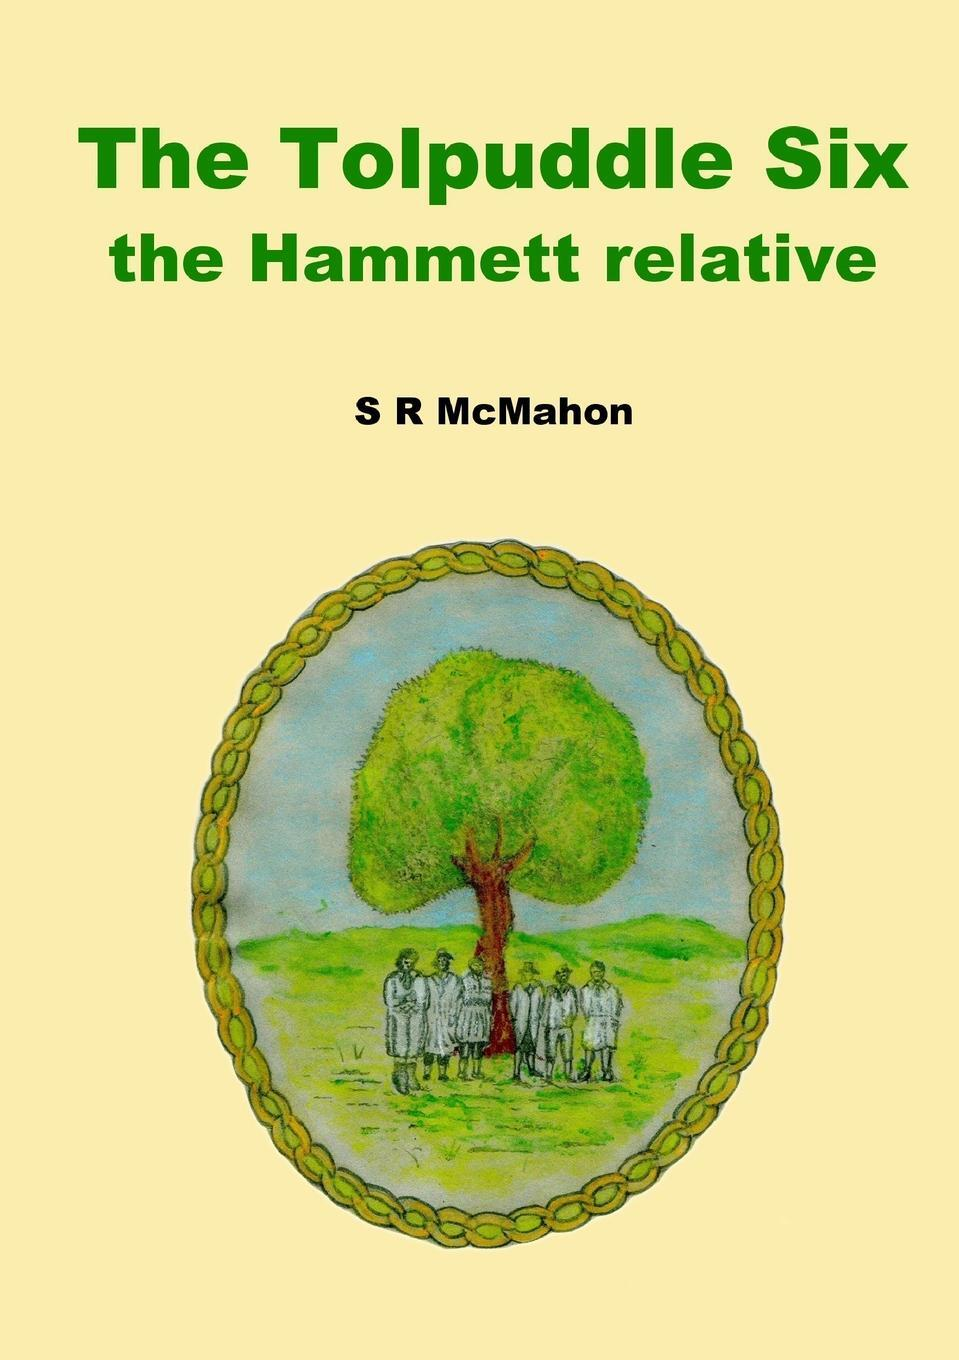 The Tolpuddle Six, the Hammett Relative